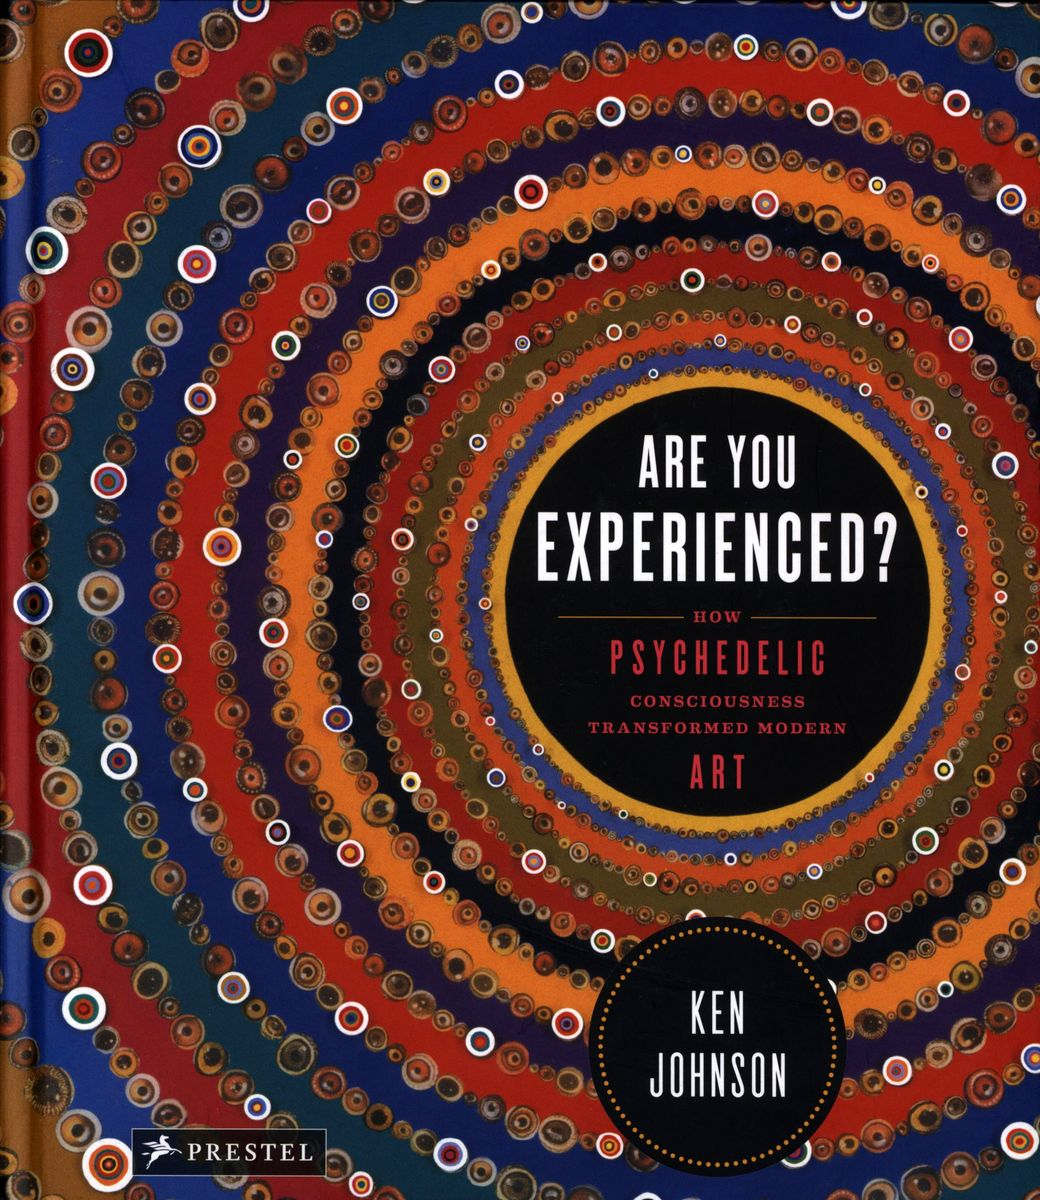 Are You Experienced? How Psychedelic Consciousness Transformed Modern Art по 2 416.00 руб от изд. Prestel